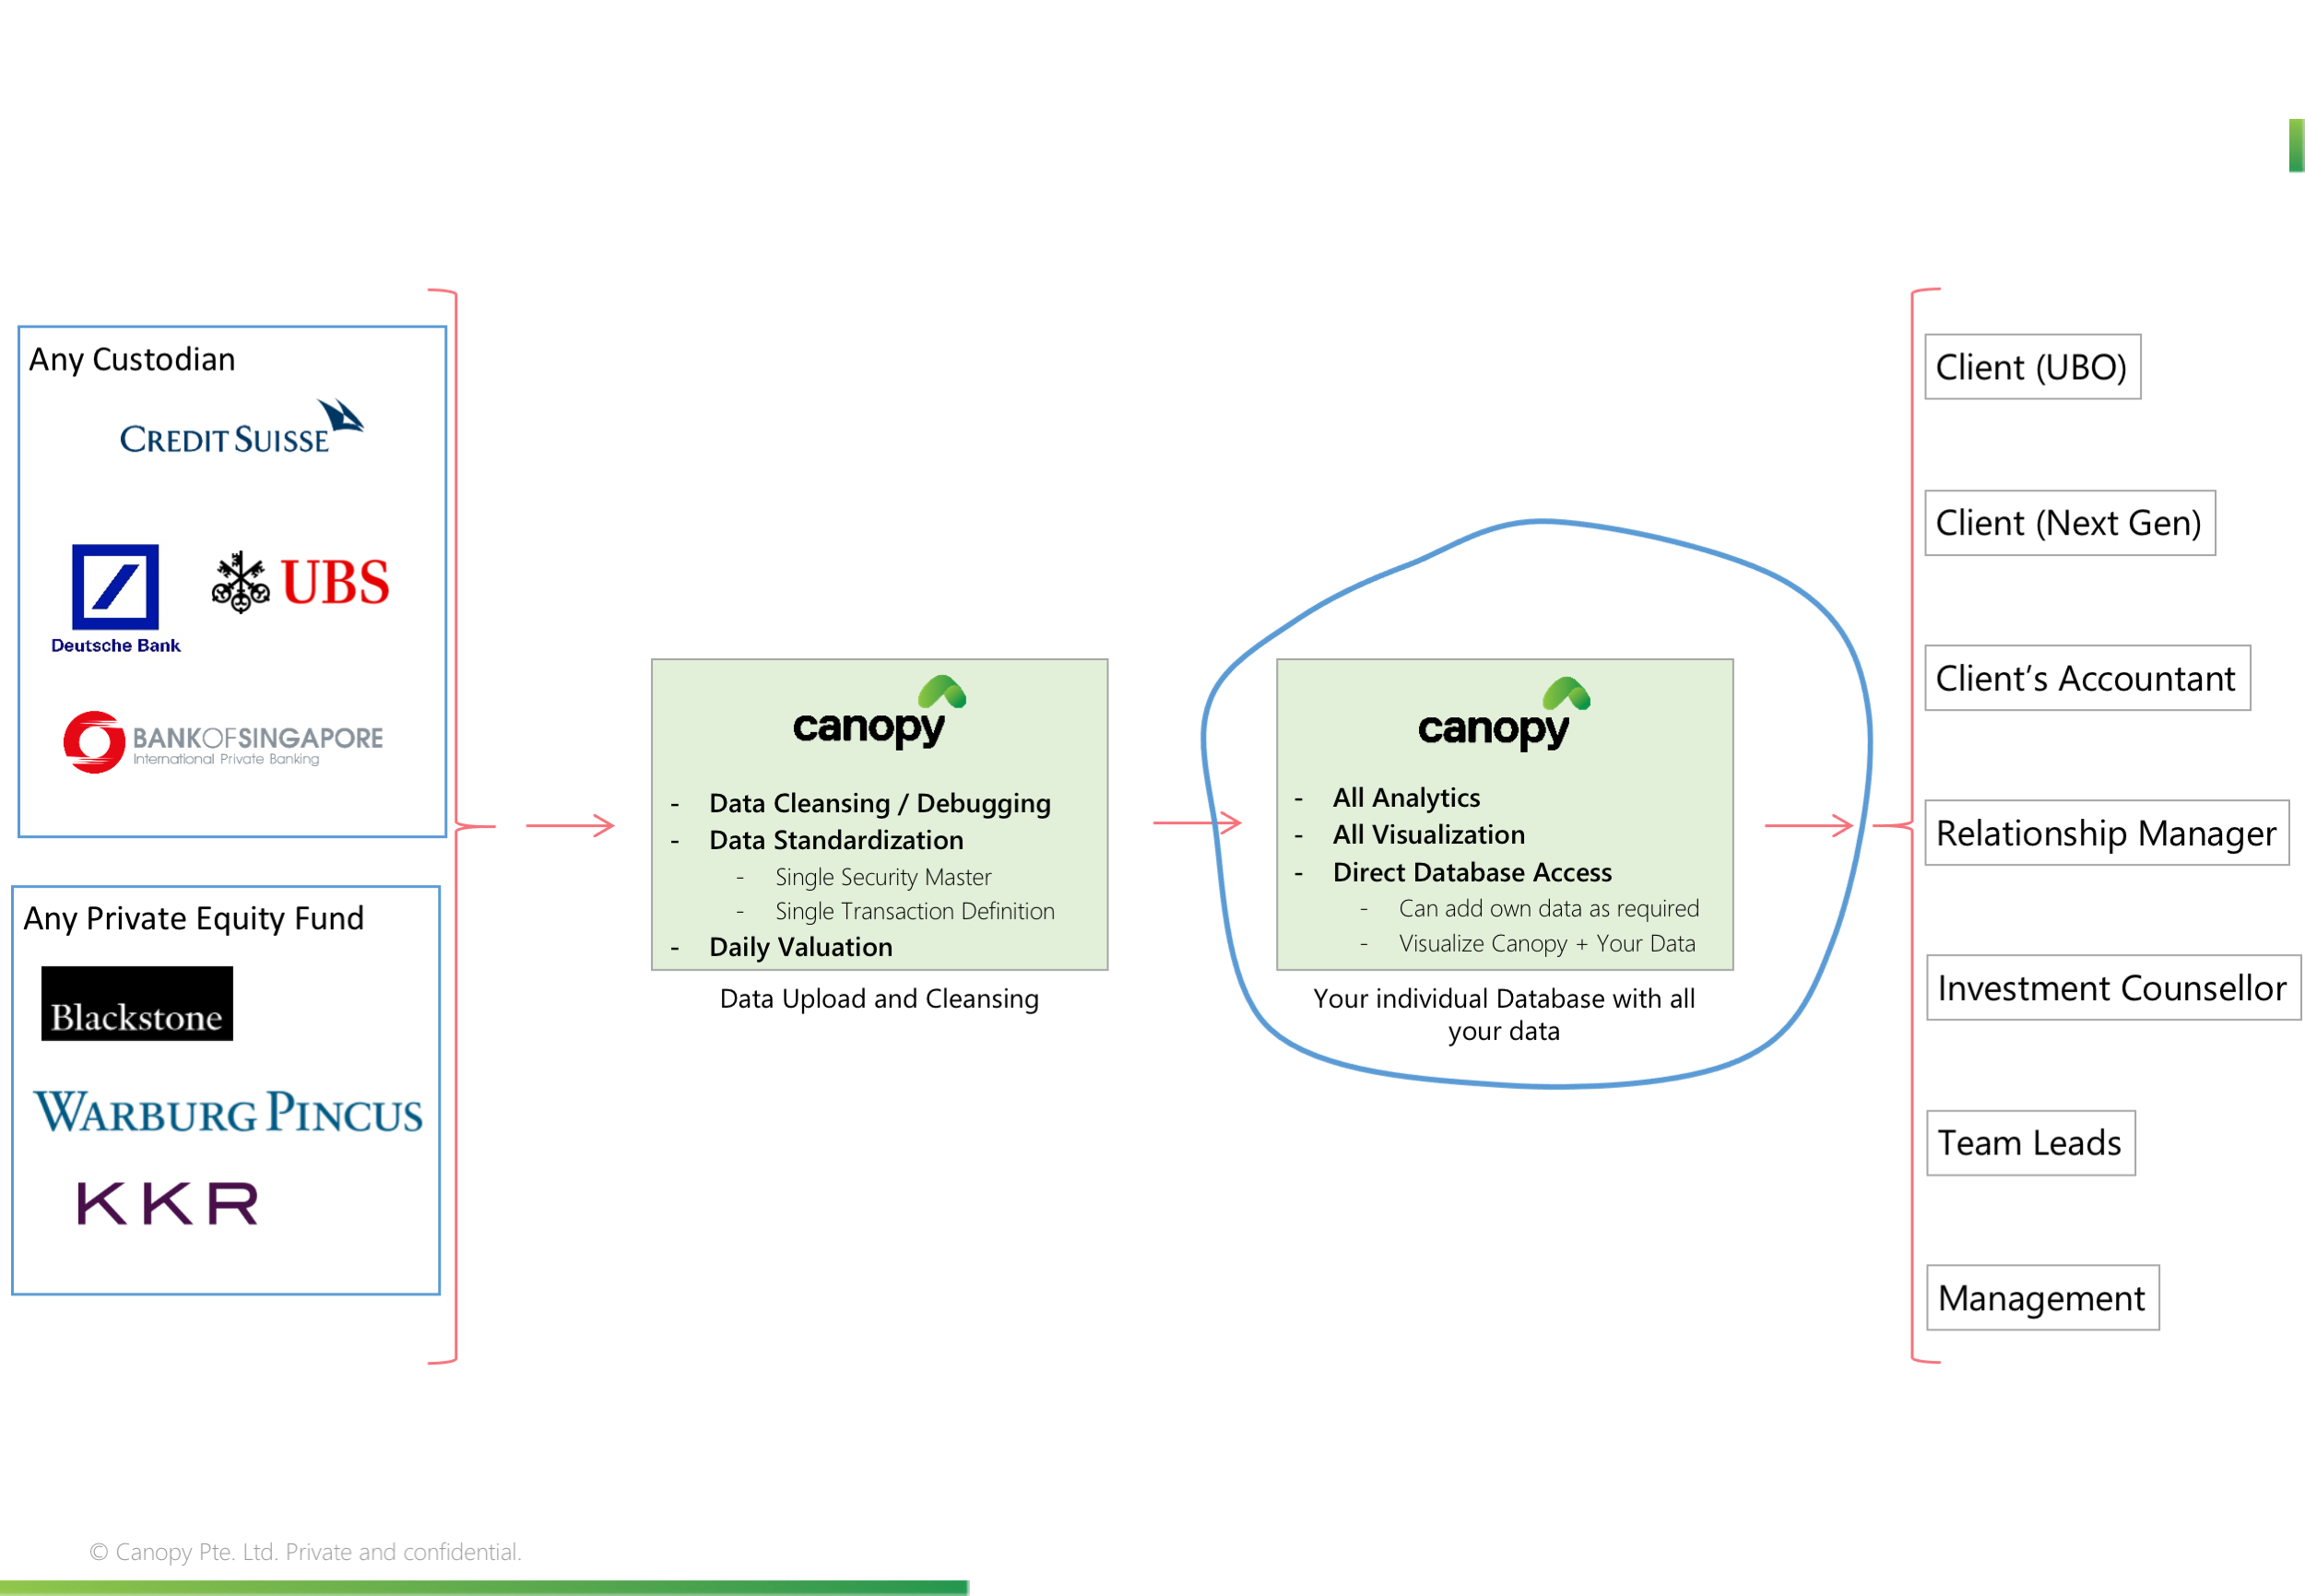 Canopy creates a separate database with all your data (you can get direct access if required)